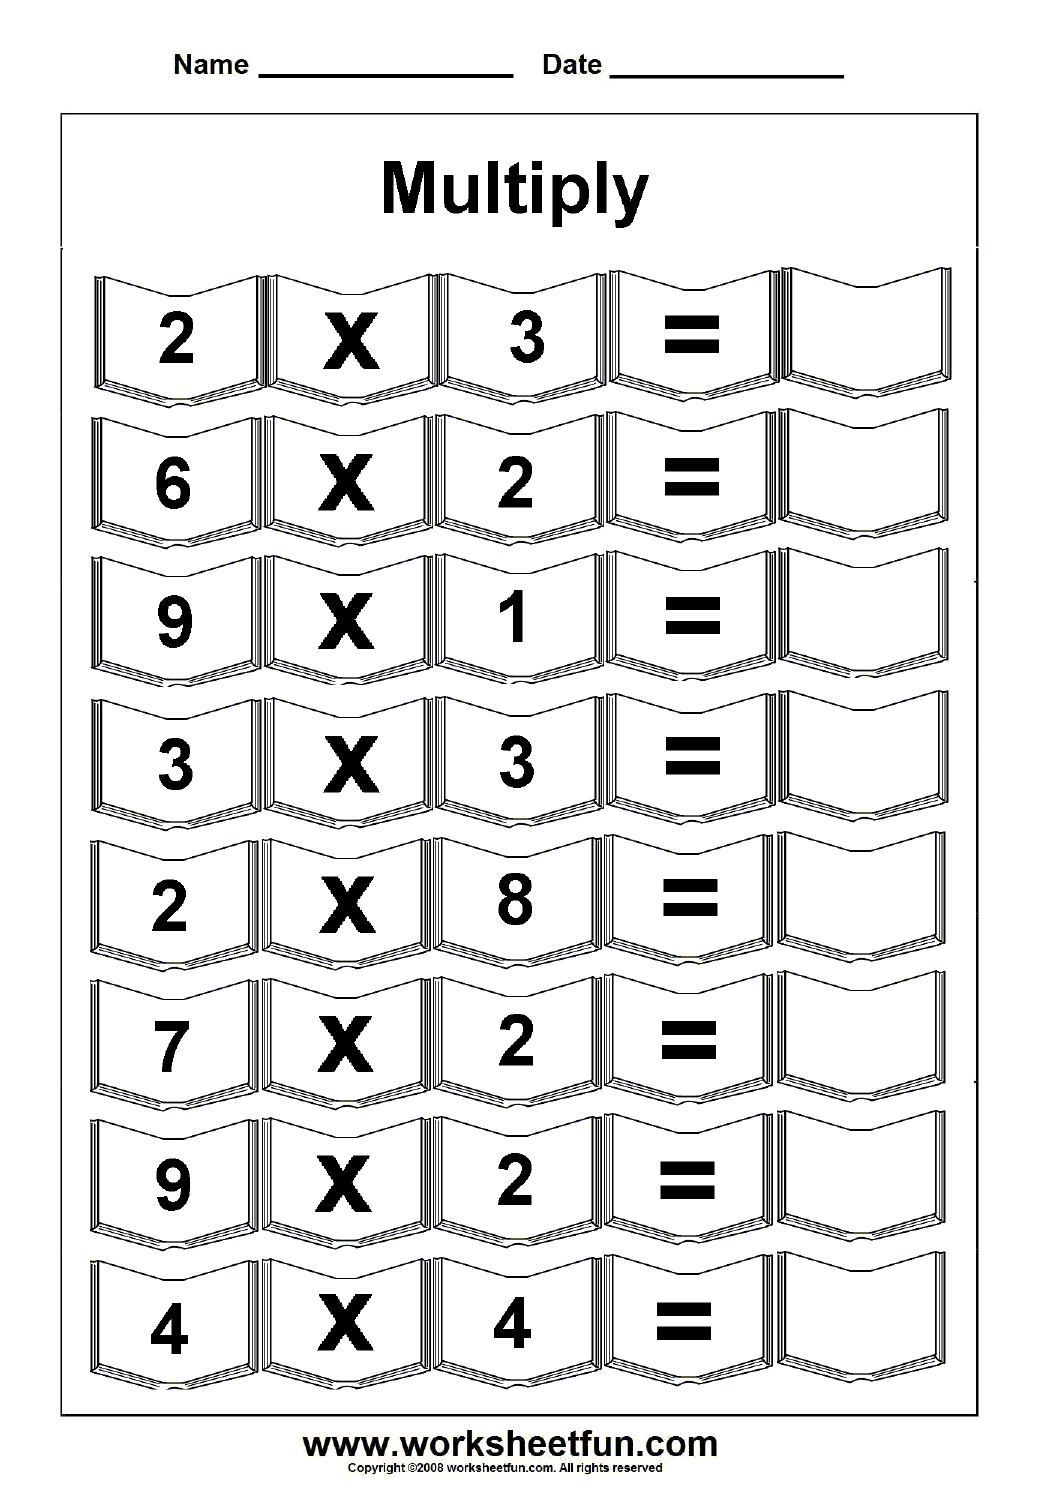 Times Tables Worksheet 5